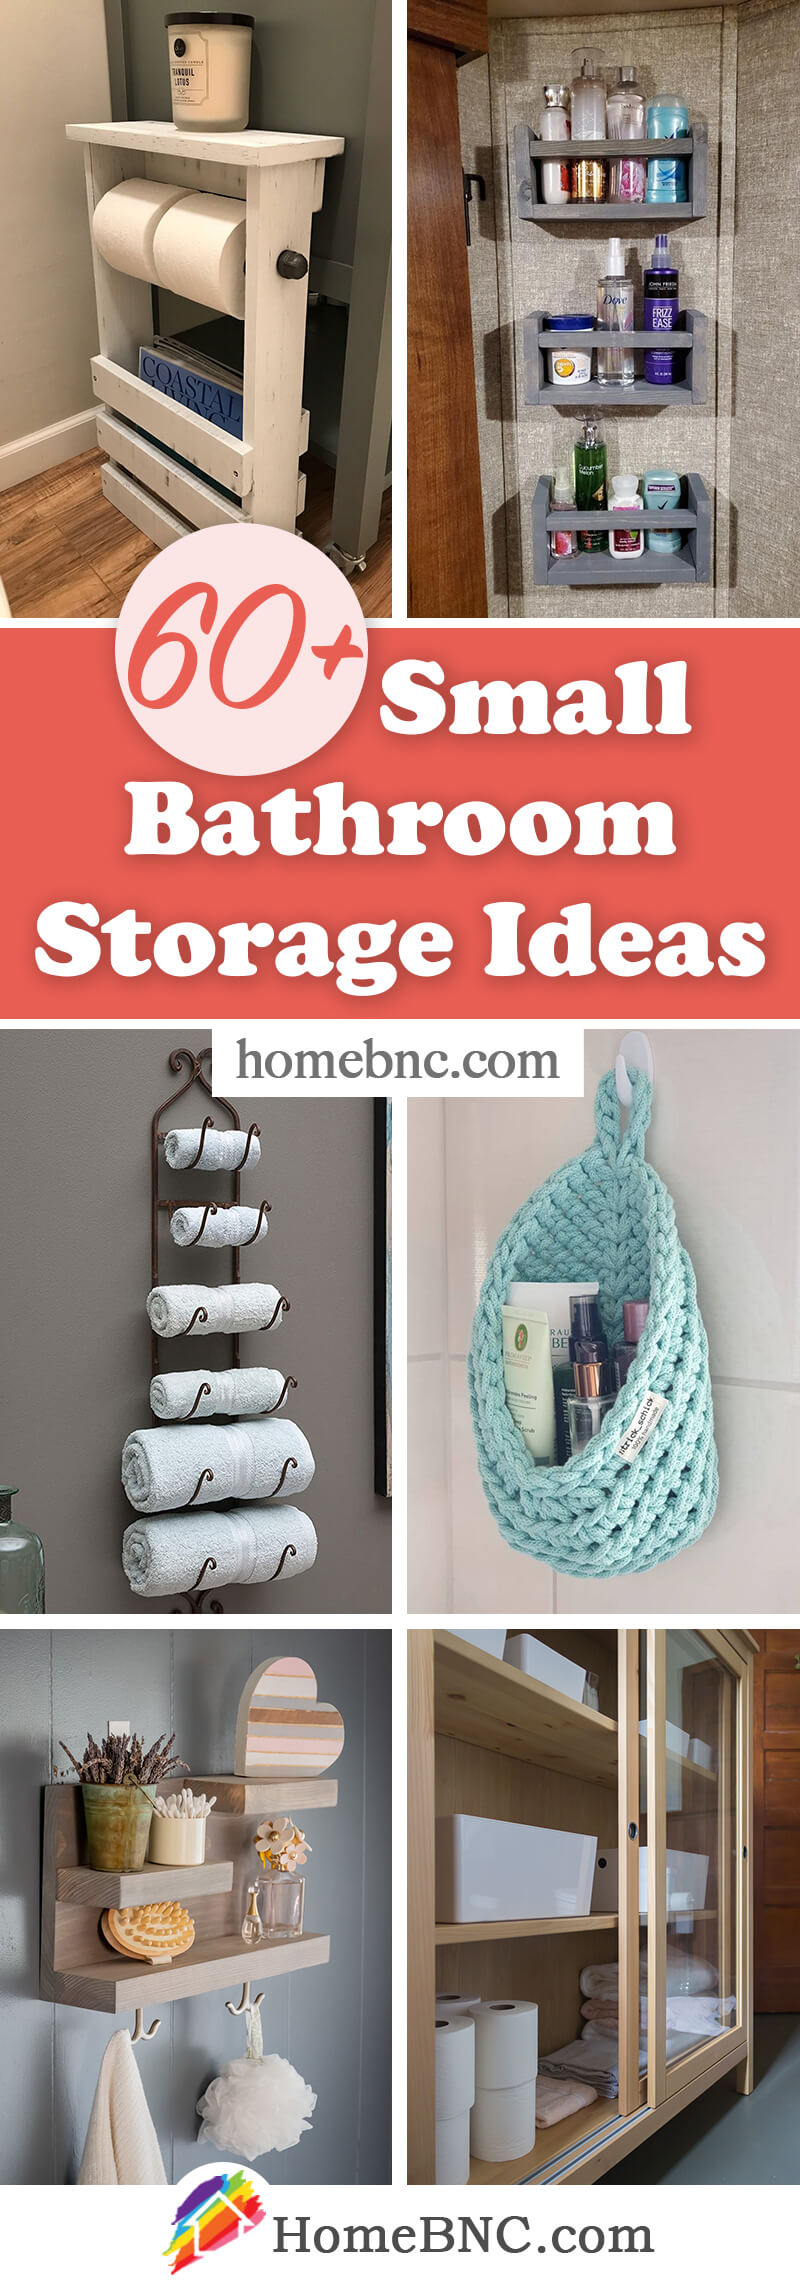 60 Best Small Bathroom Storage Ideas And Tips For 2021